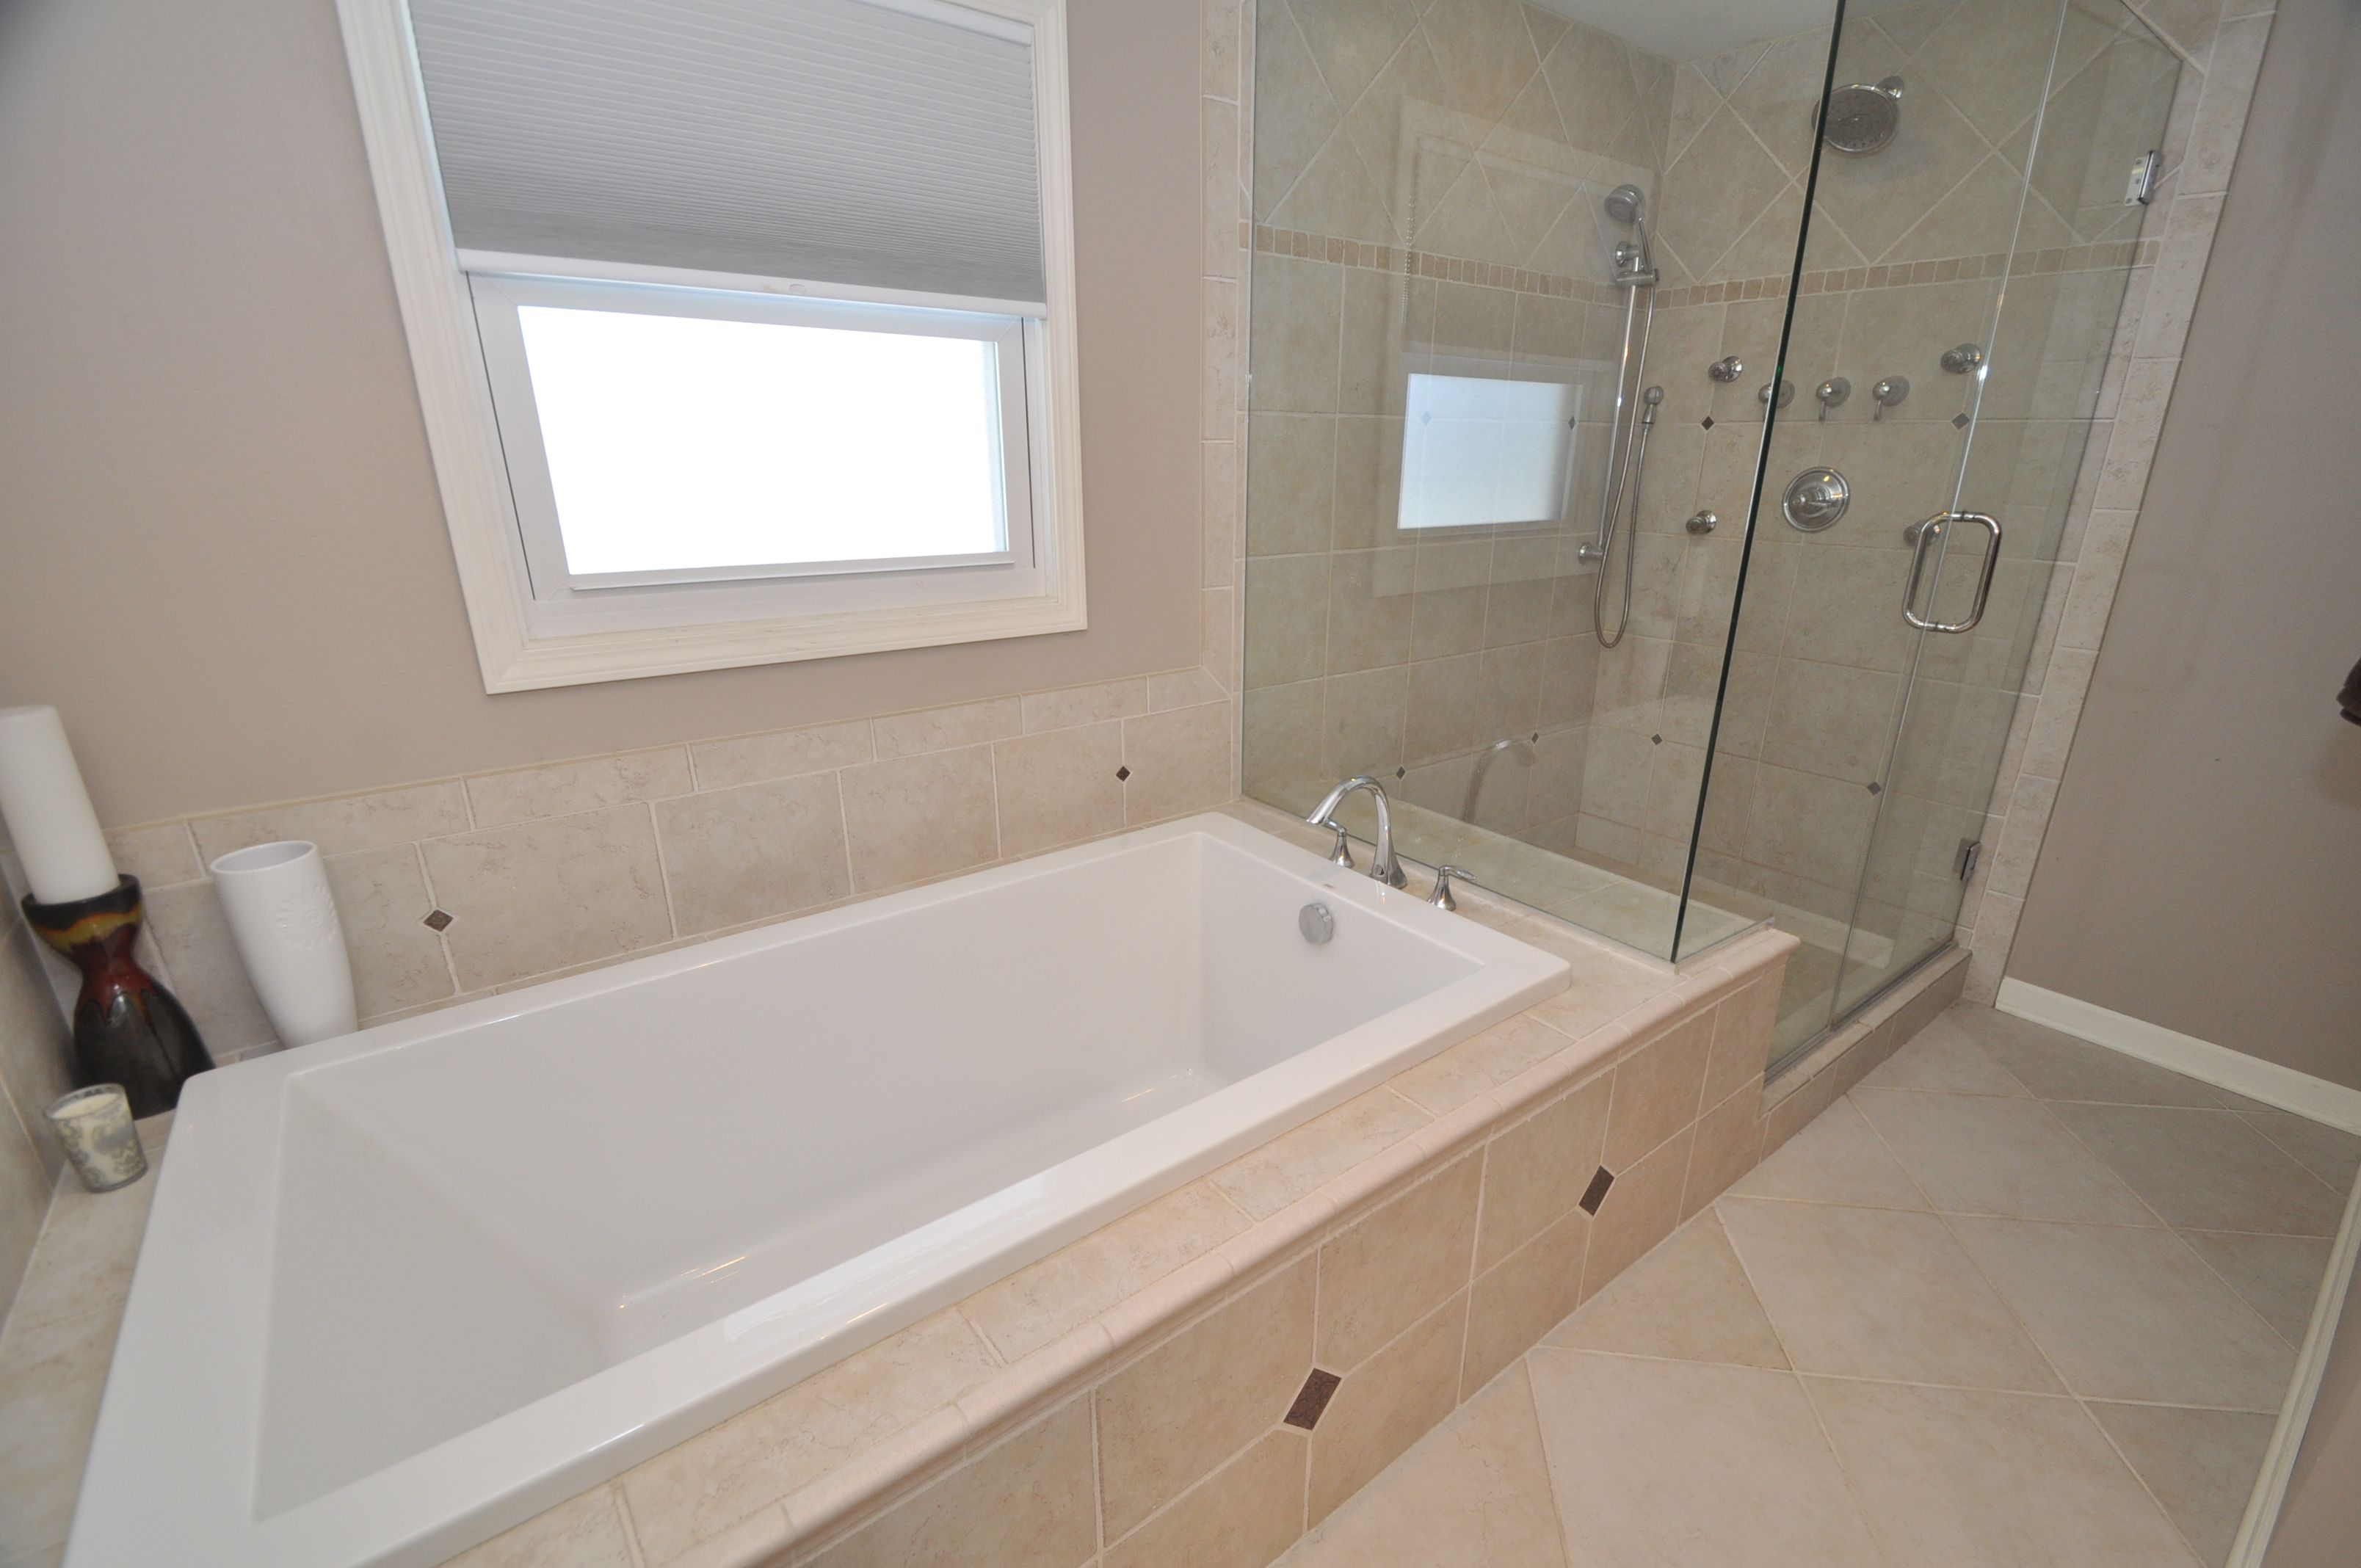 deep soaker tub and body sprays along with a handheld shower system ...